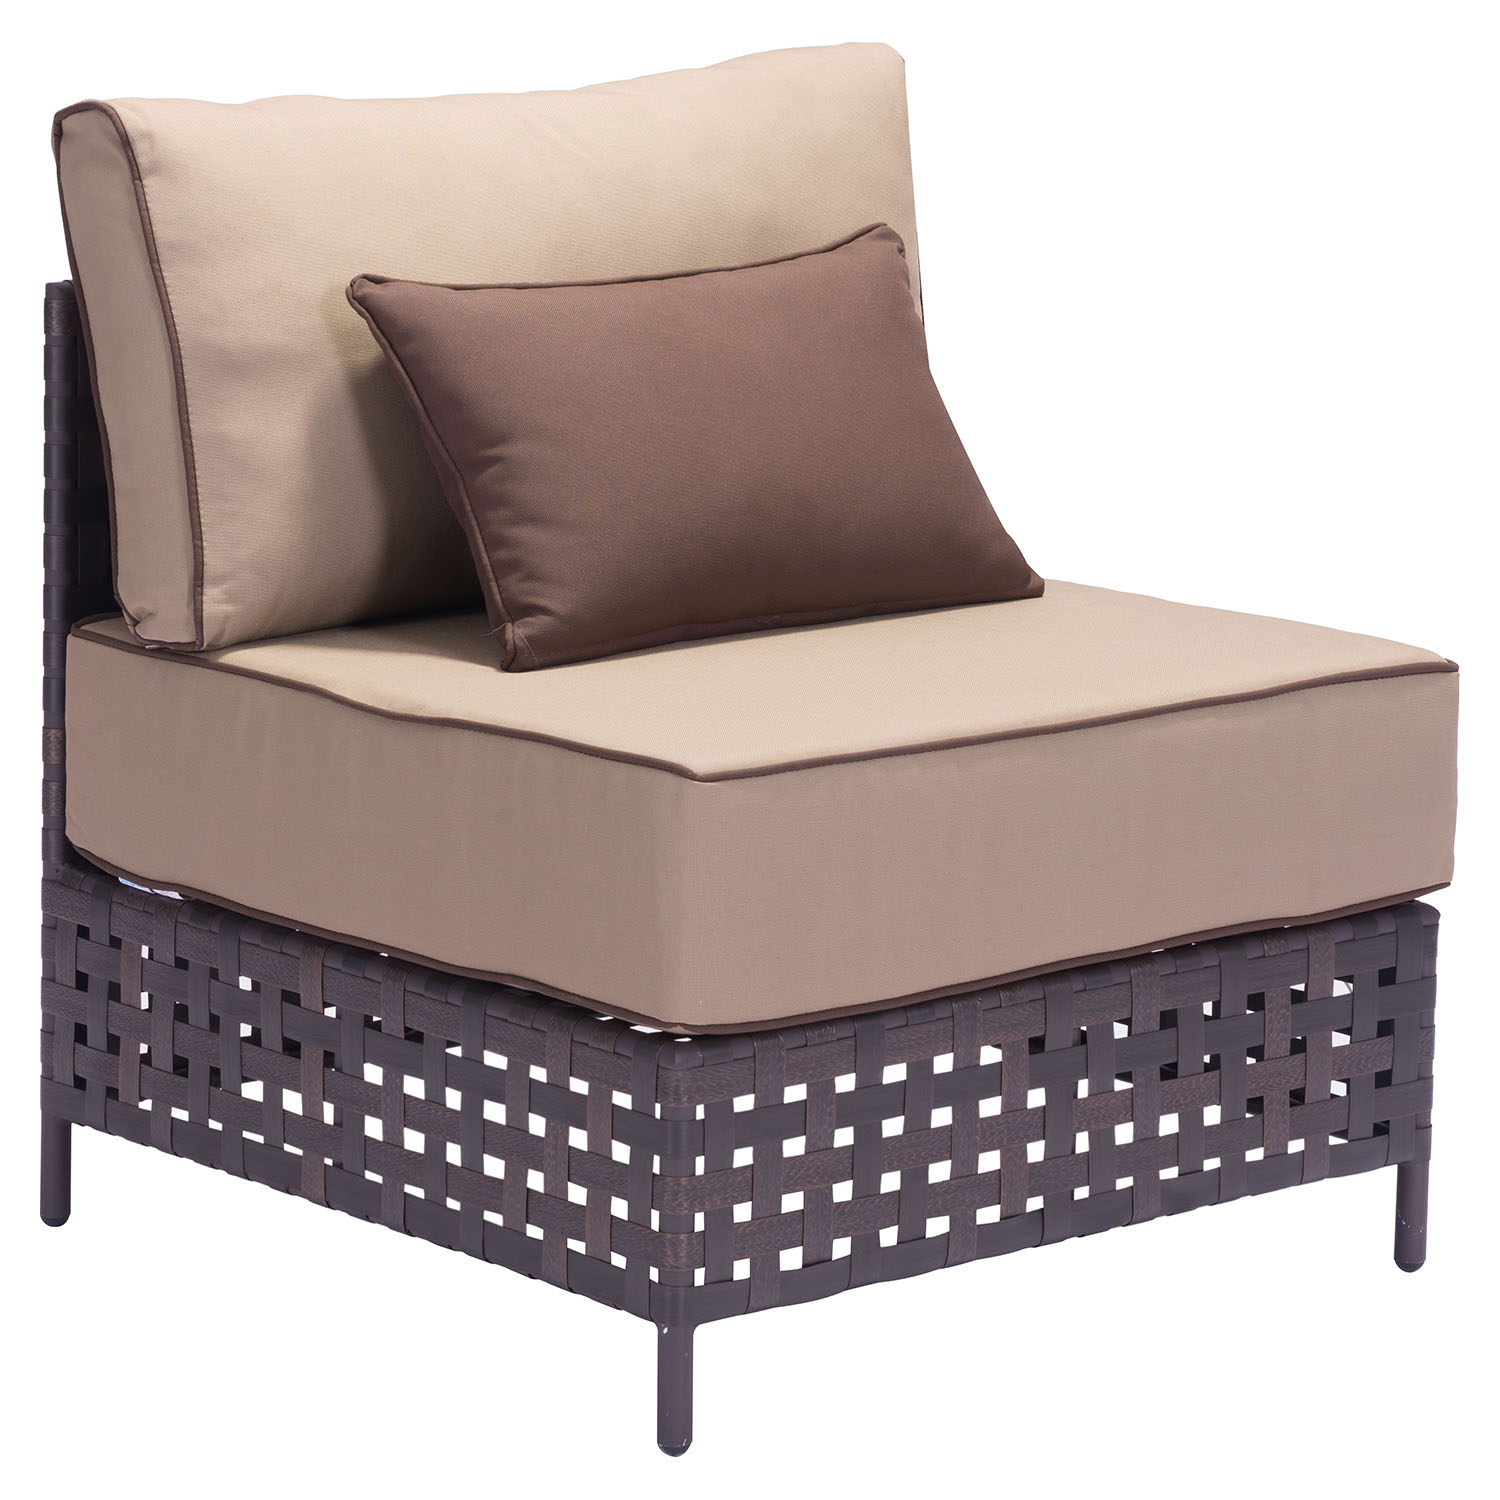 Pinery Sectionals - Brown and Beige - ZM-703-PINERY